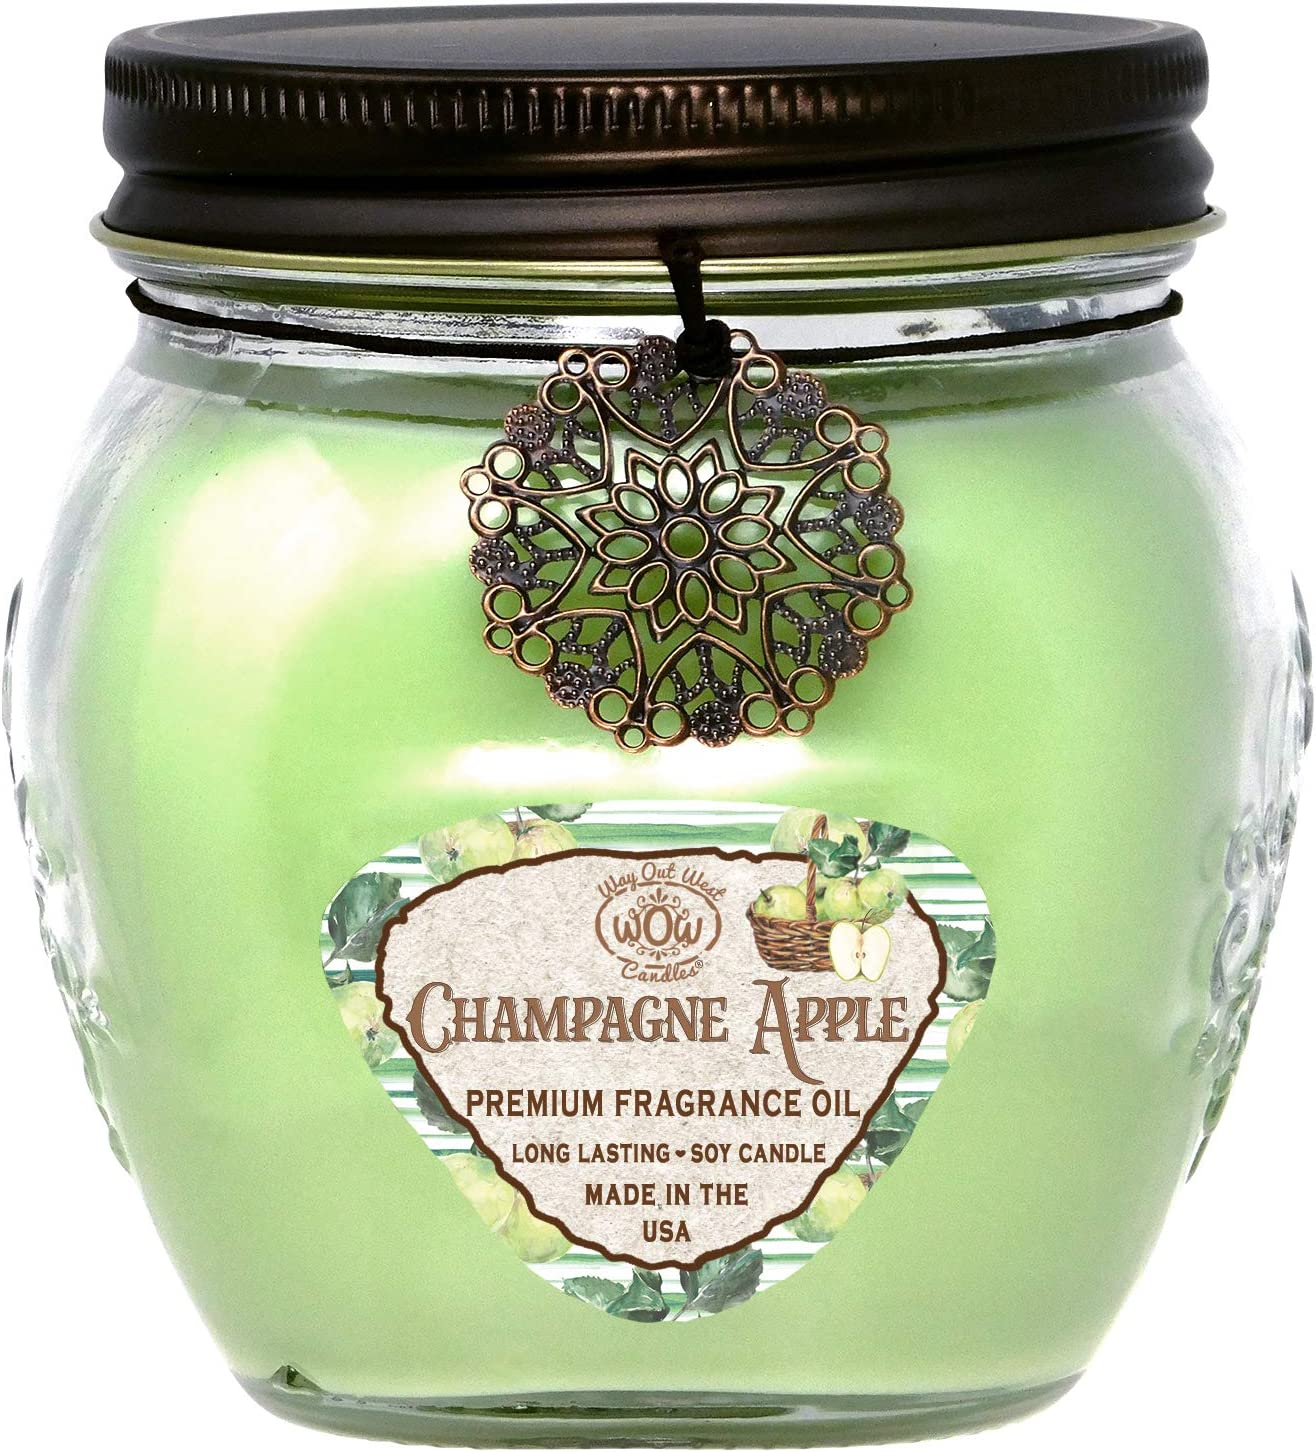 Scented Jar Candle Champagne Apple - 17 Oz Long Lasting Soy Blend - Made in USA by Way Out West for Mom